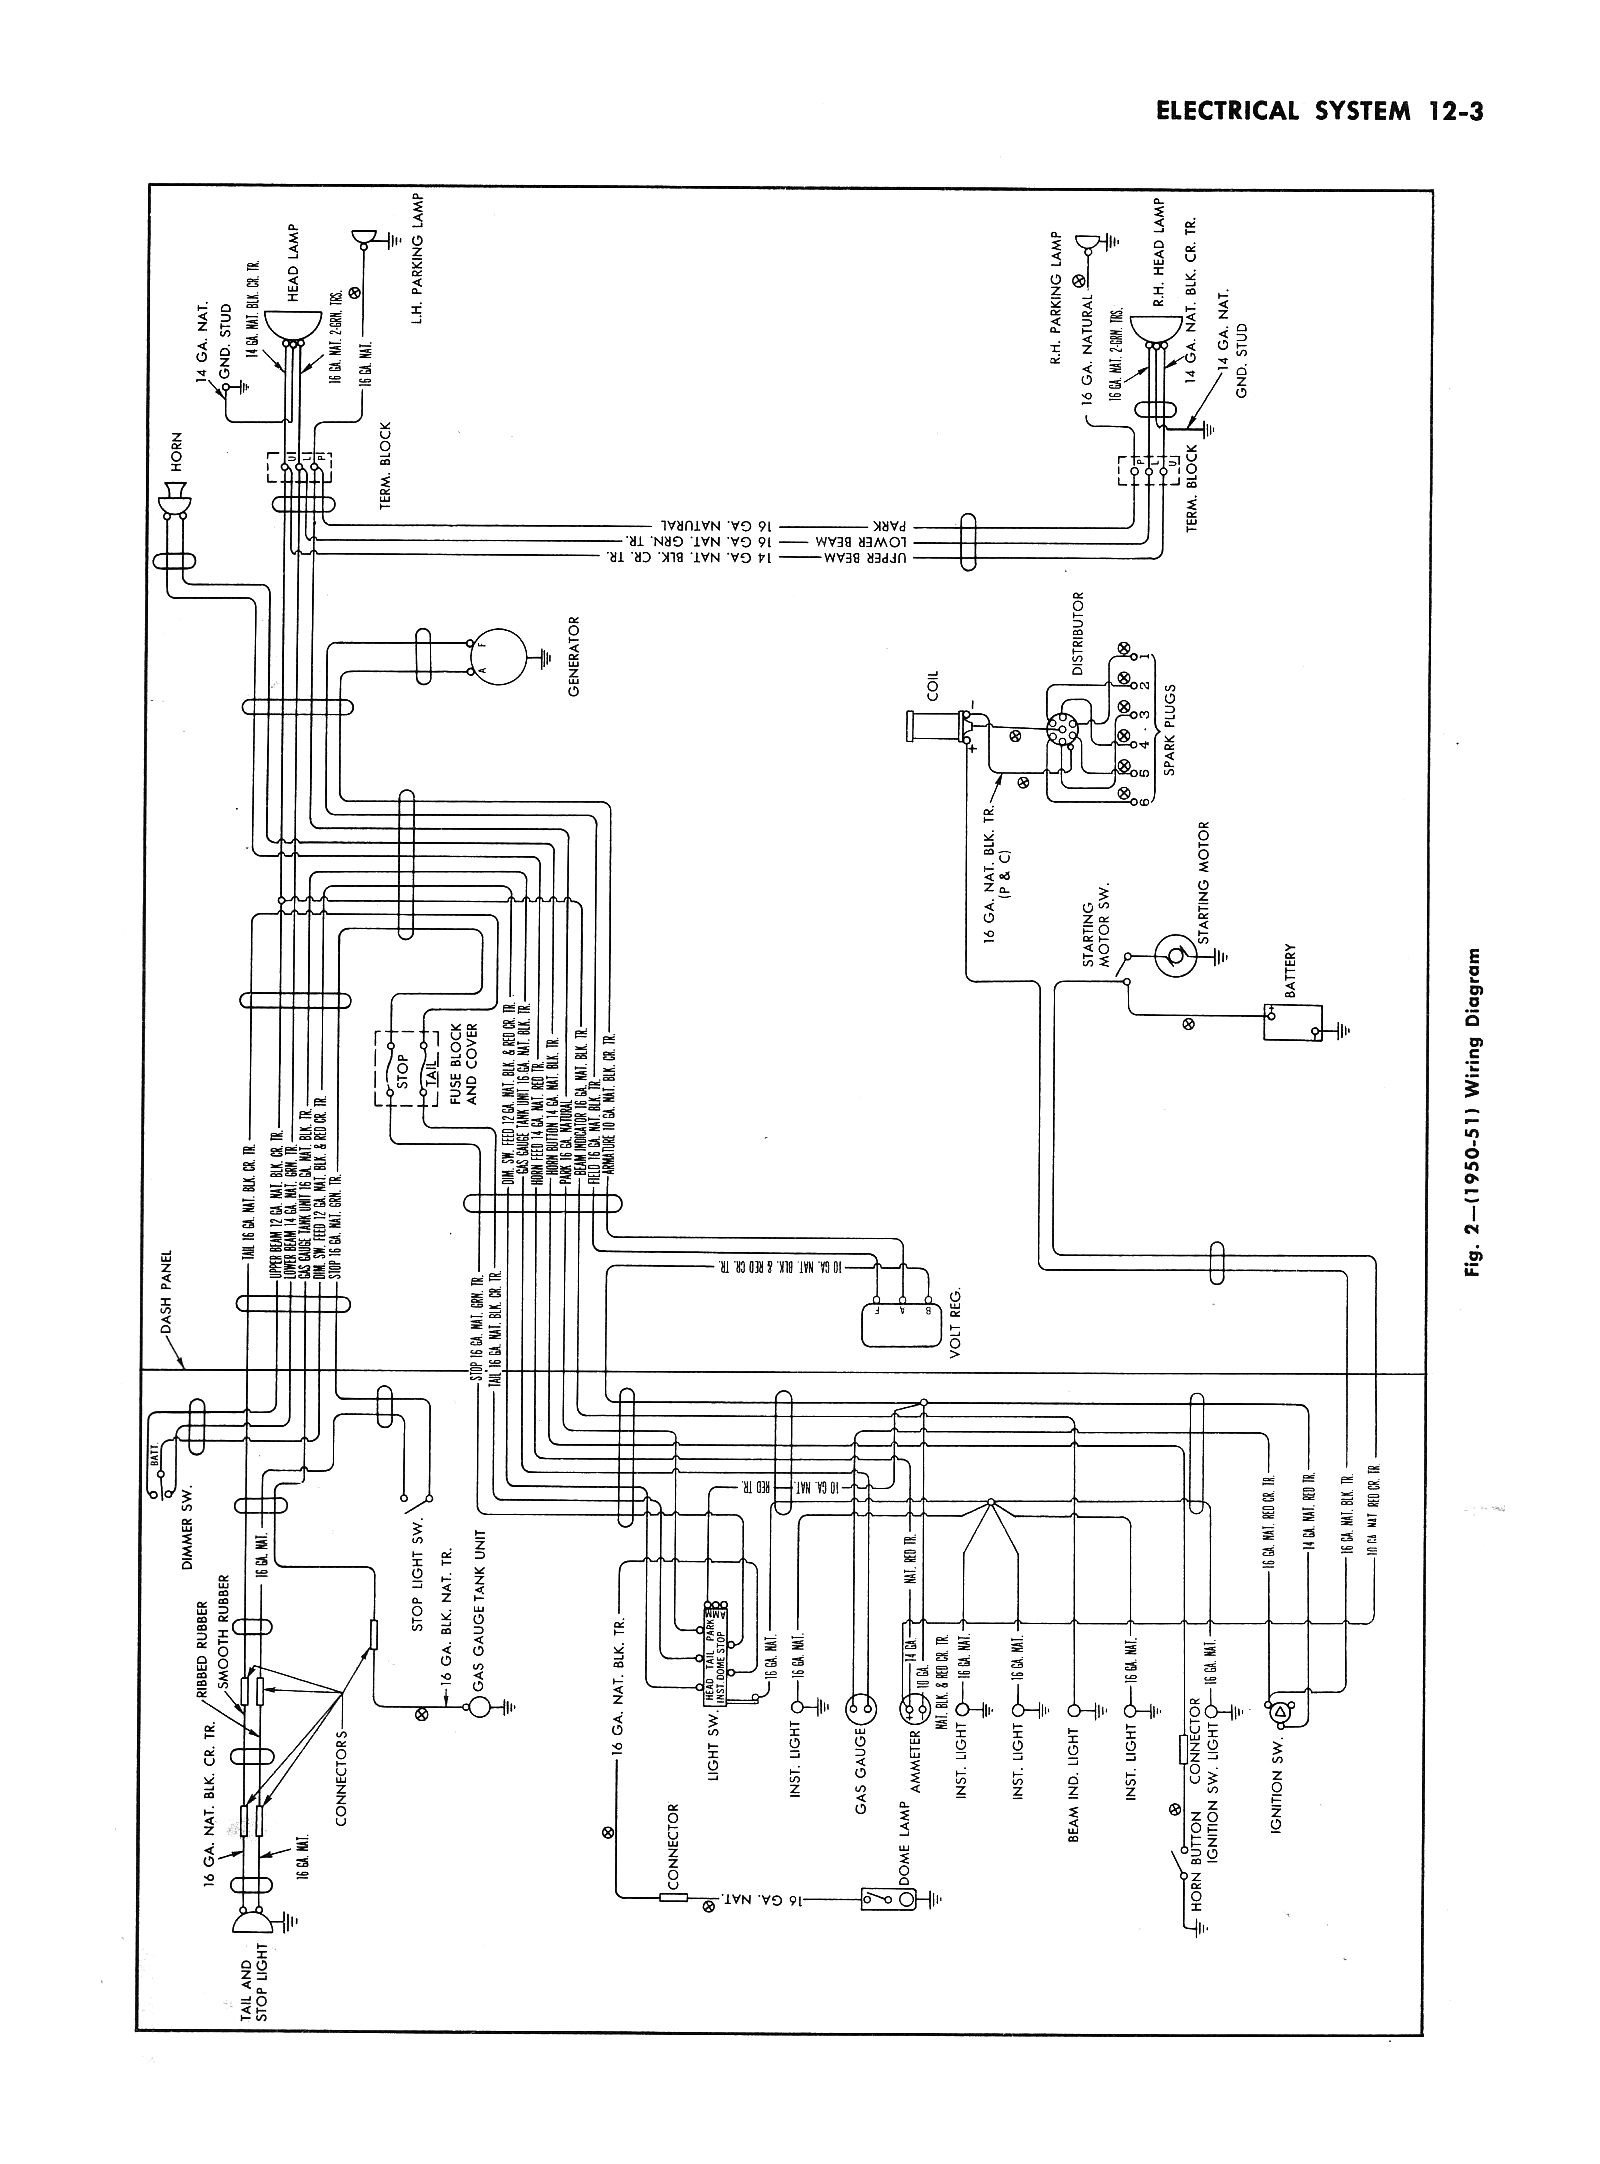 chevy wiring diagrams 1951 Chevy Truck Wiring Harness Diagram 1954 chevy truck wiring harness